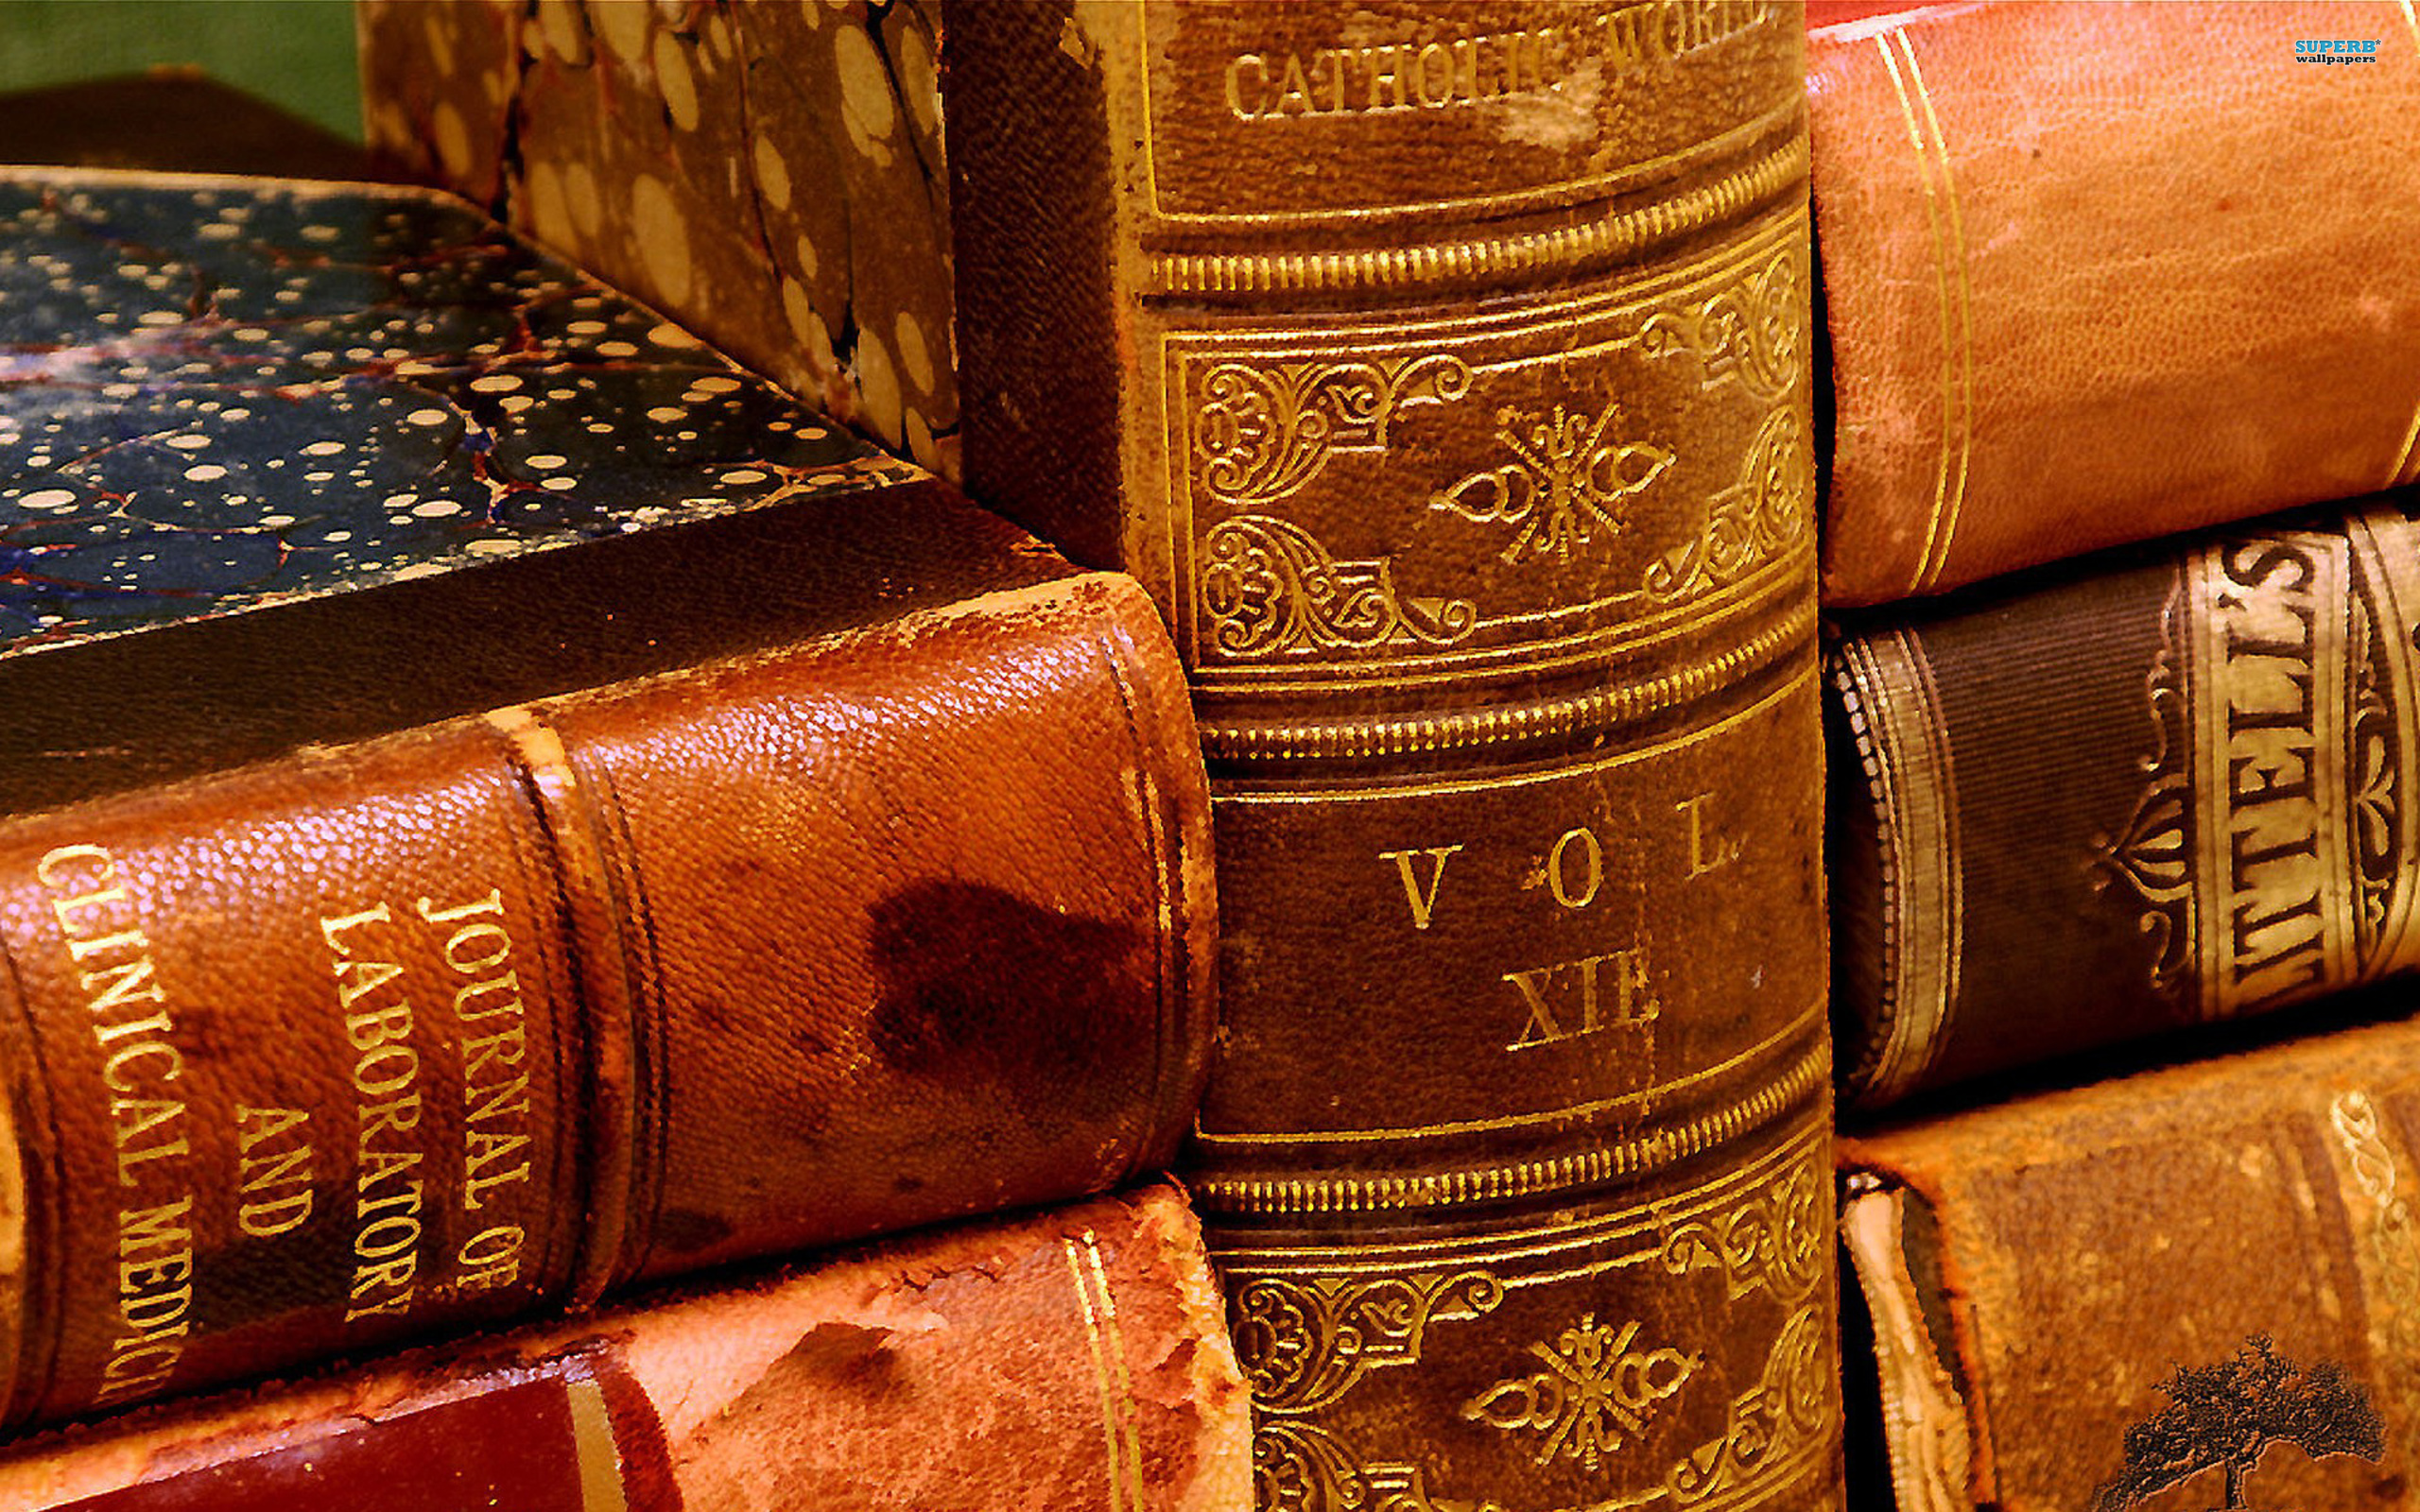 old-books-photography-2399781[1]